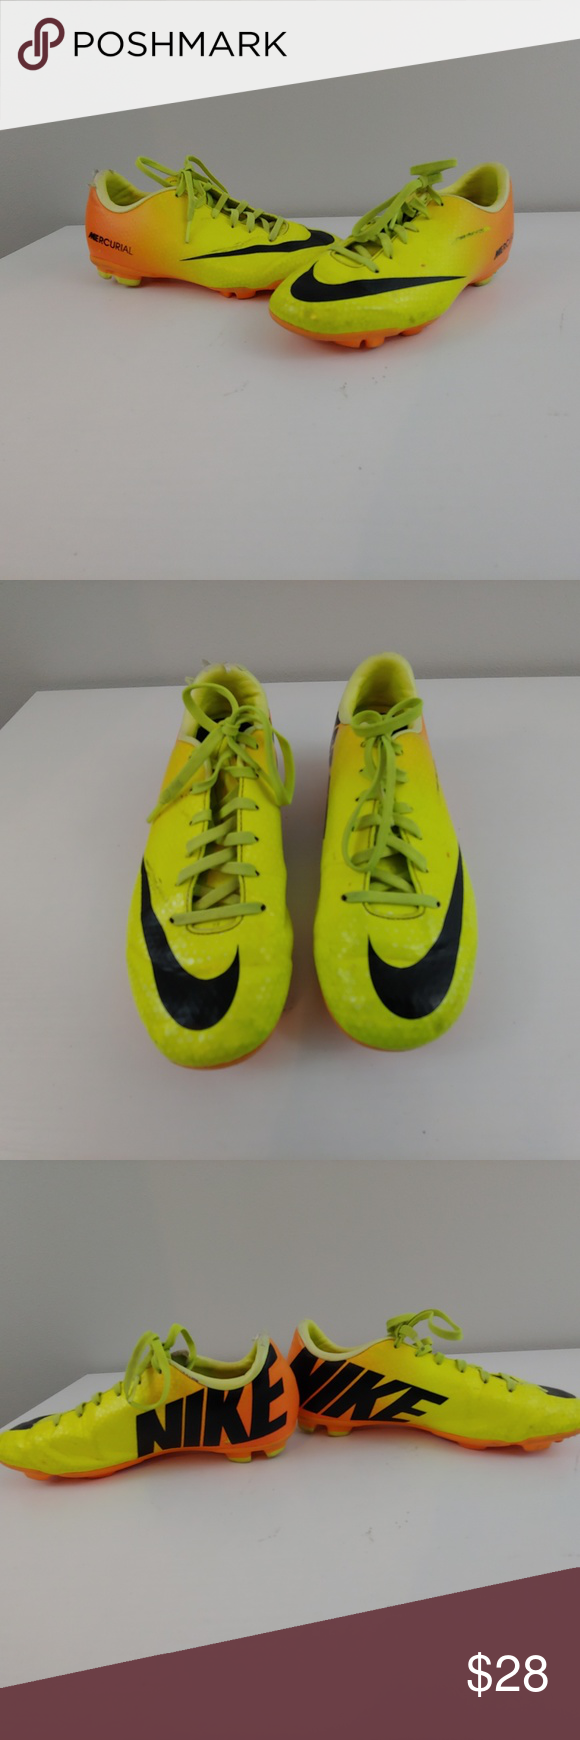 1671fbc66657ce Youth 3 Nike Mercurial 553631-708 cleats neon Youth 3 Nike Mercurial  553631-708 cleats yellow orange neon nonsmoking home